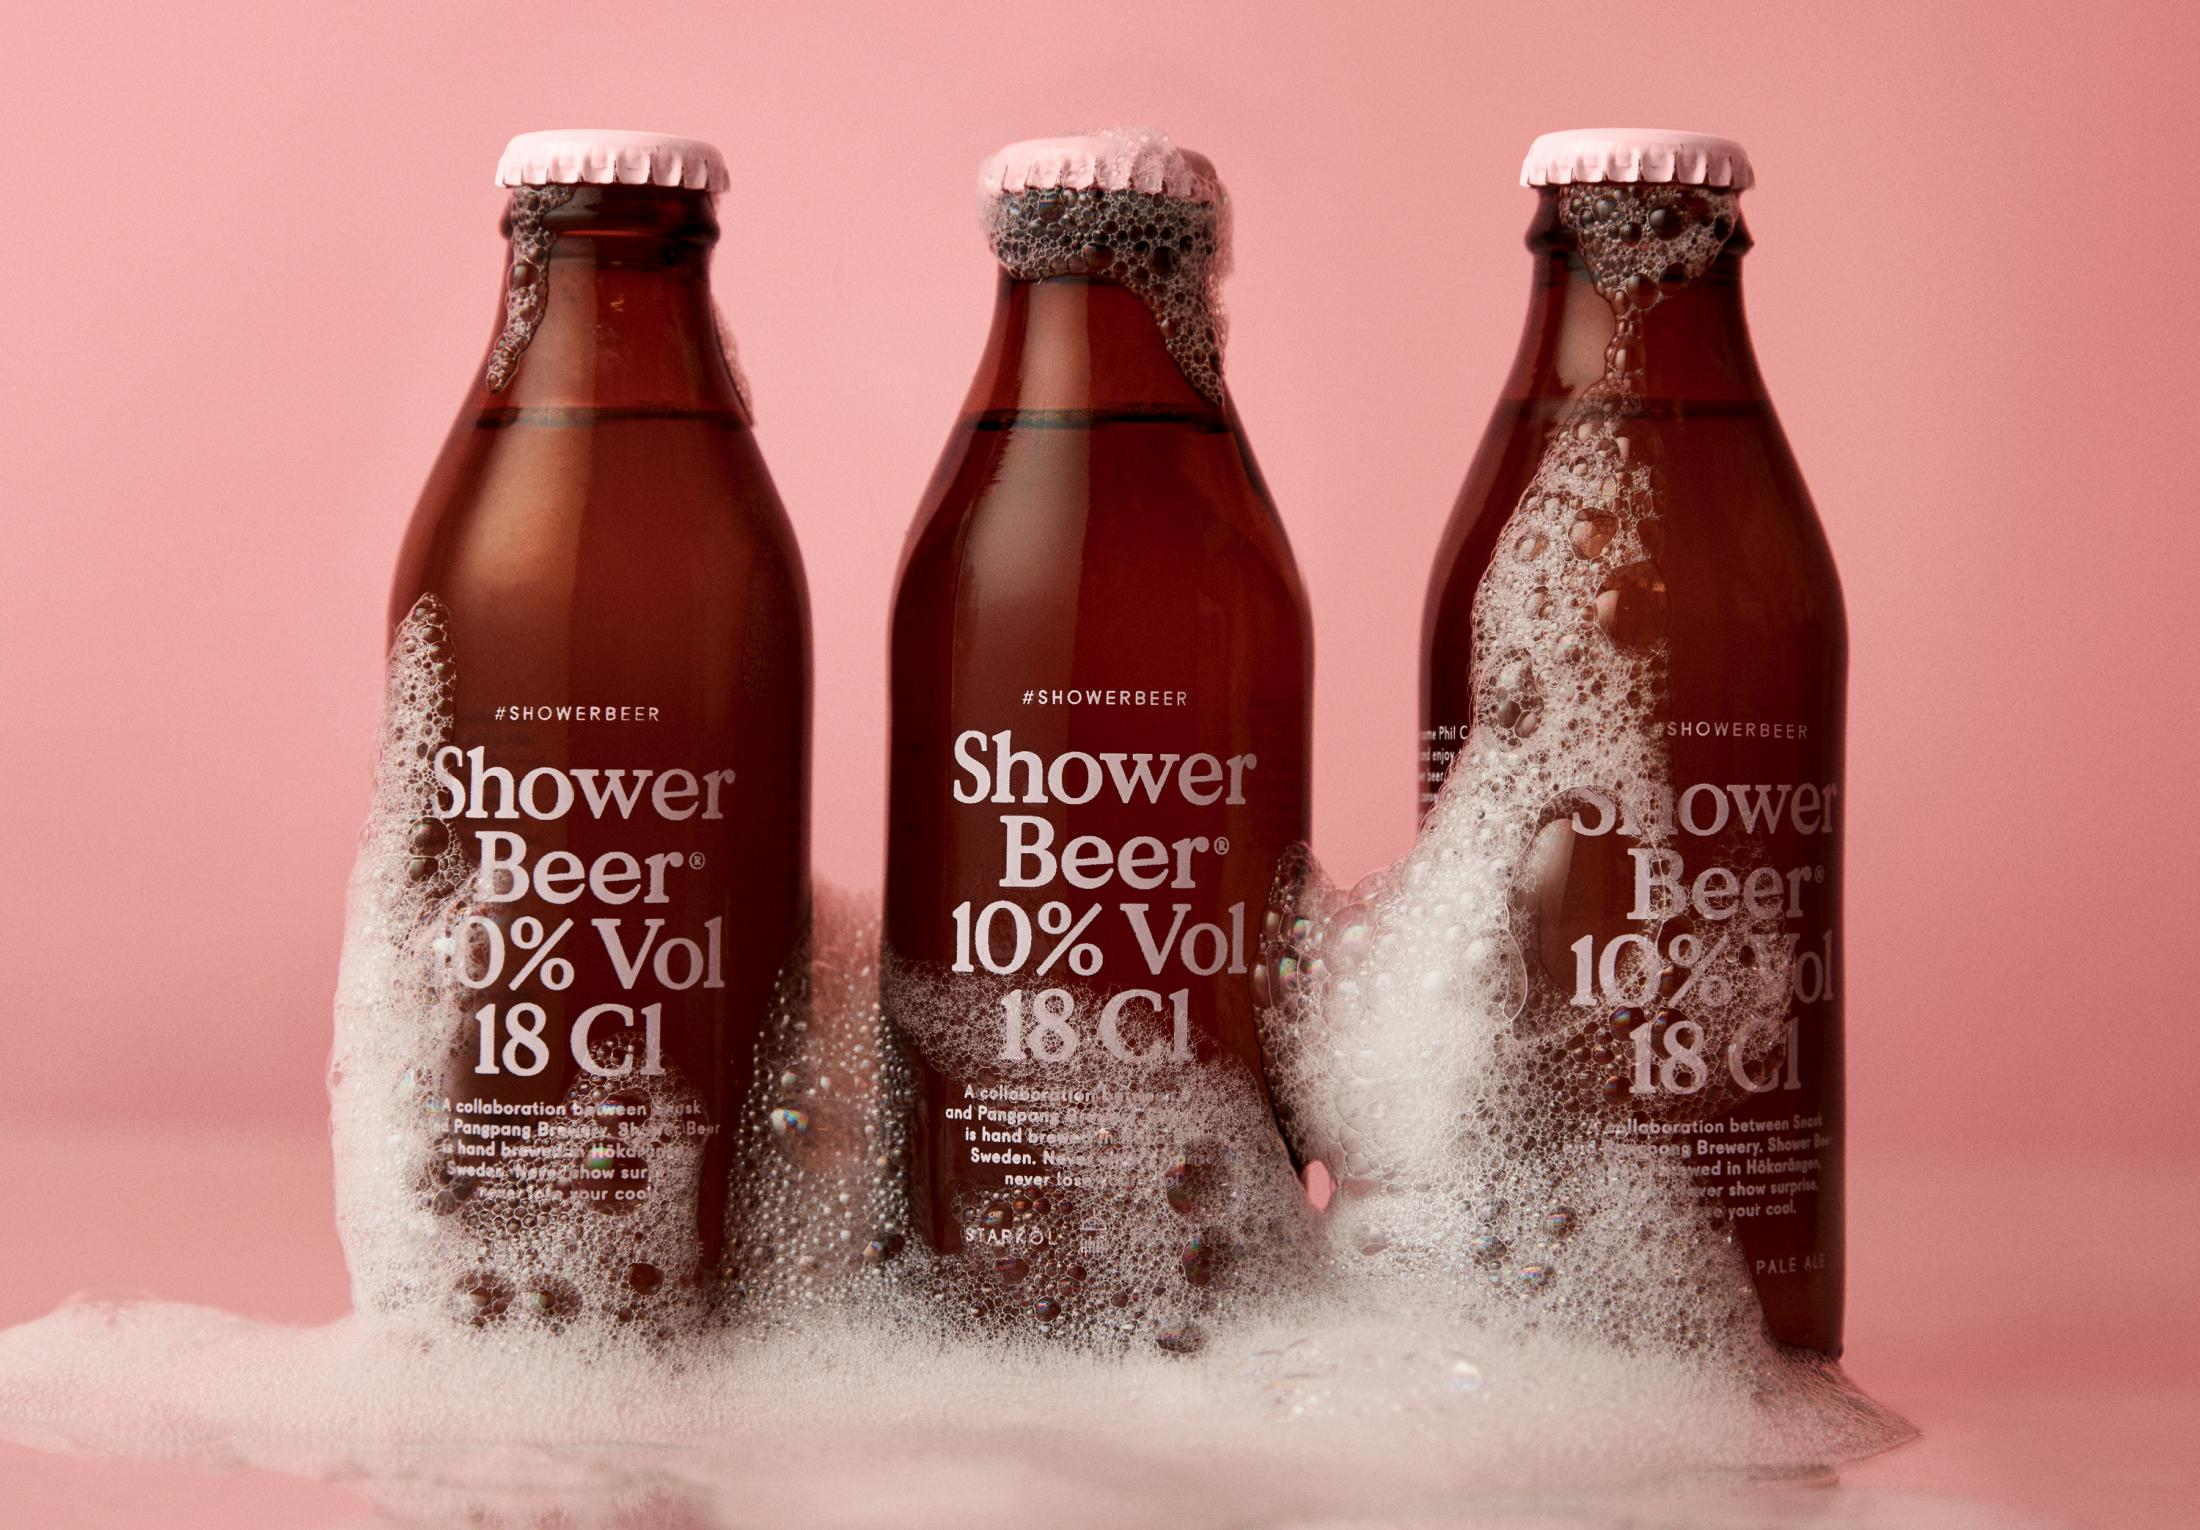 aotwshower-beer_04_bottles-foam.jpg